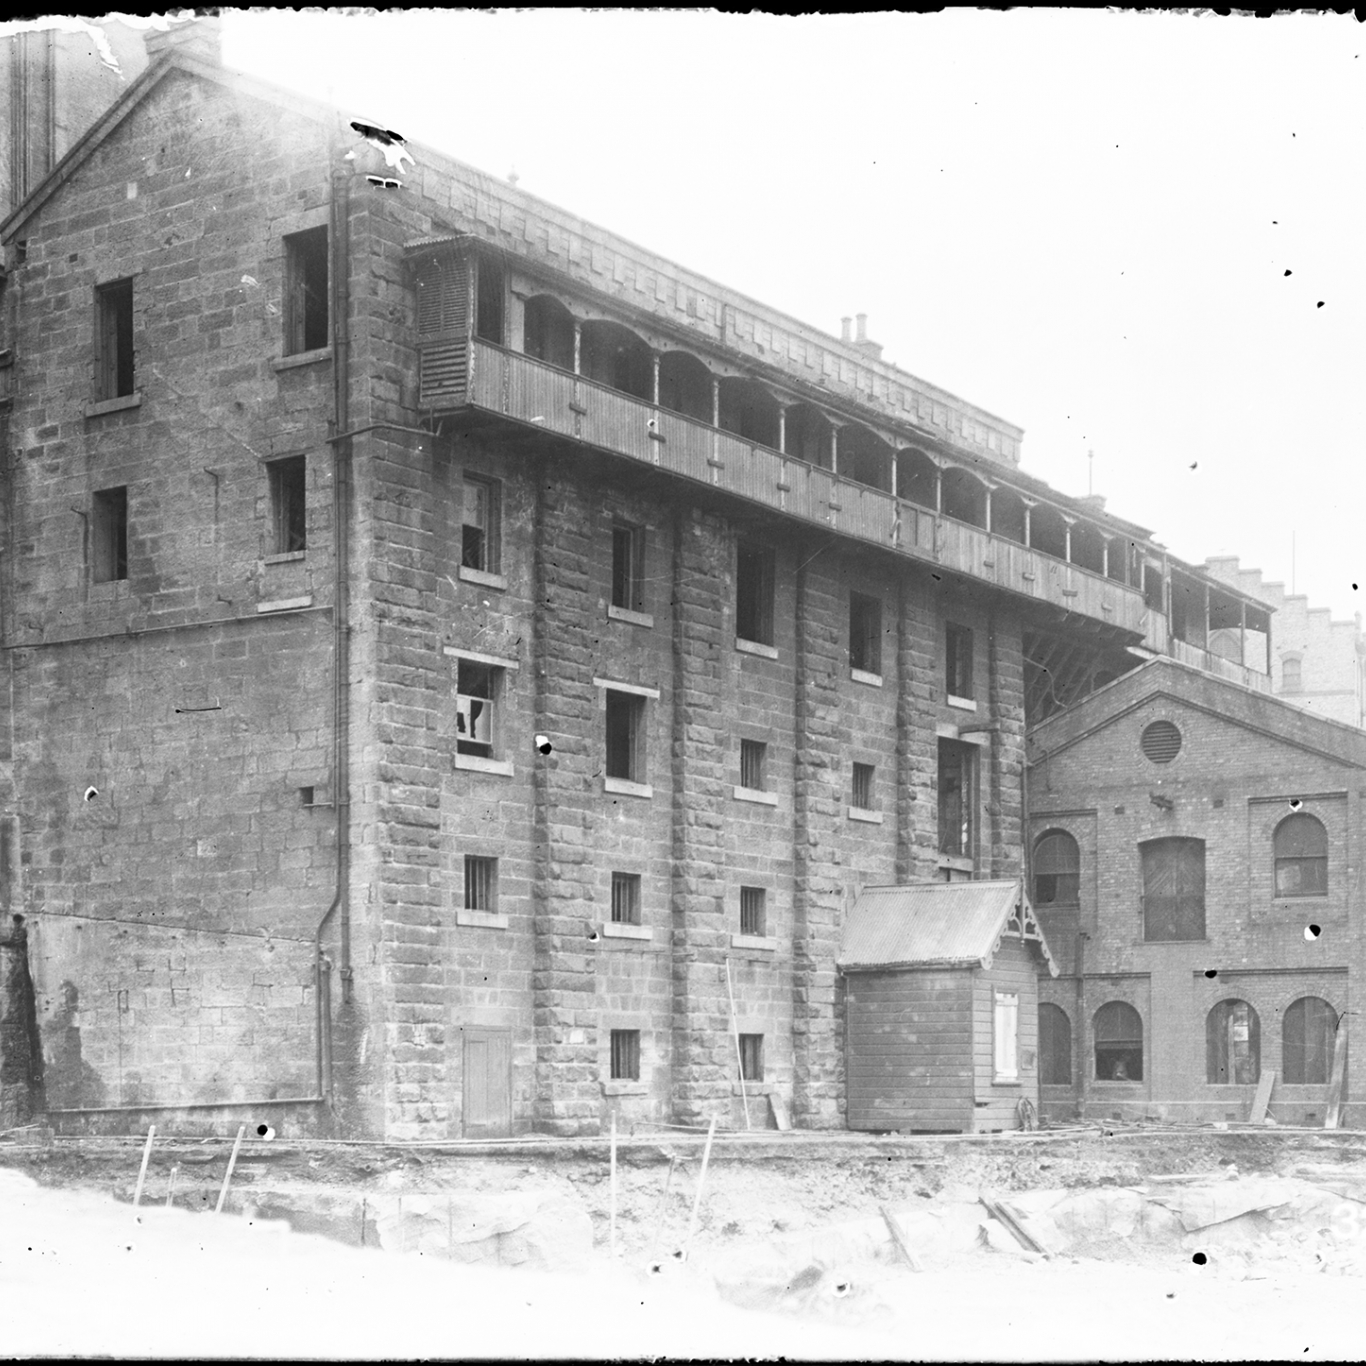 Black and white photograph of multistorey building with covered verandah along top floor.